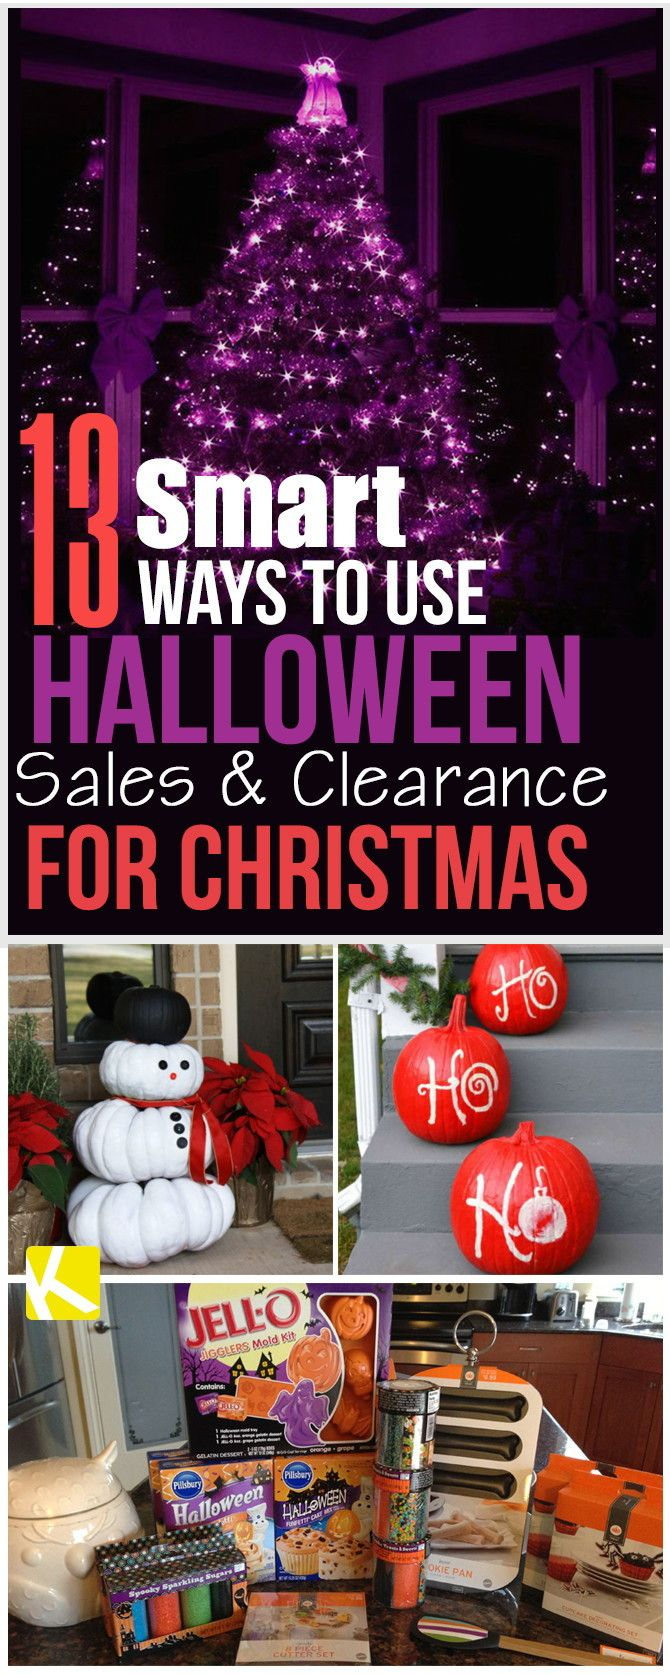 For many, the Halloween clearance shelves are a place to stock up for the next year, but we have 13 tips on how you can actually take advantage of all the Halloween sales and clearance items for that huge holiday coming up—Christmas!